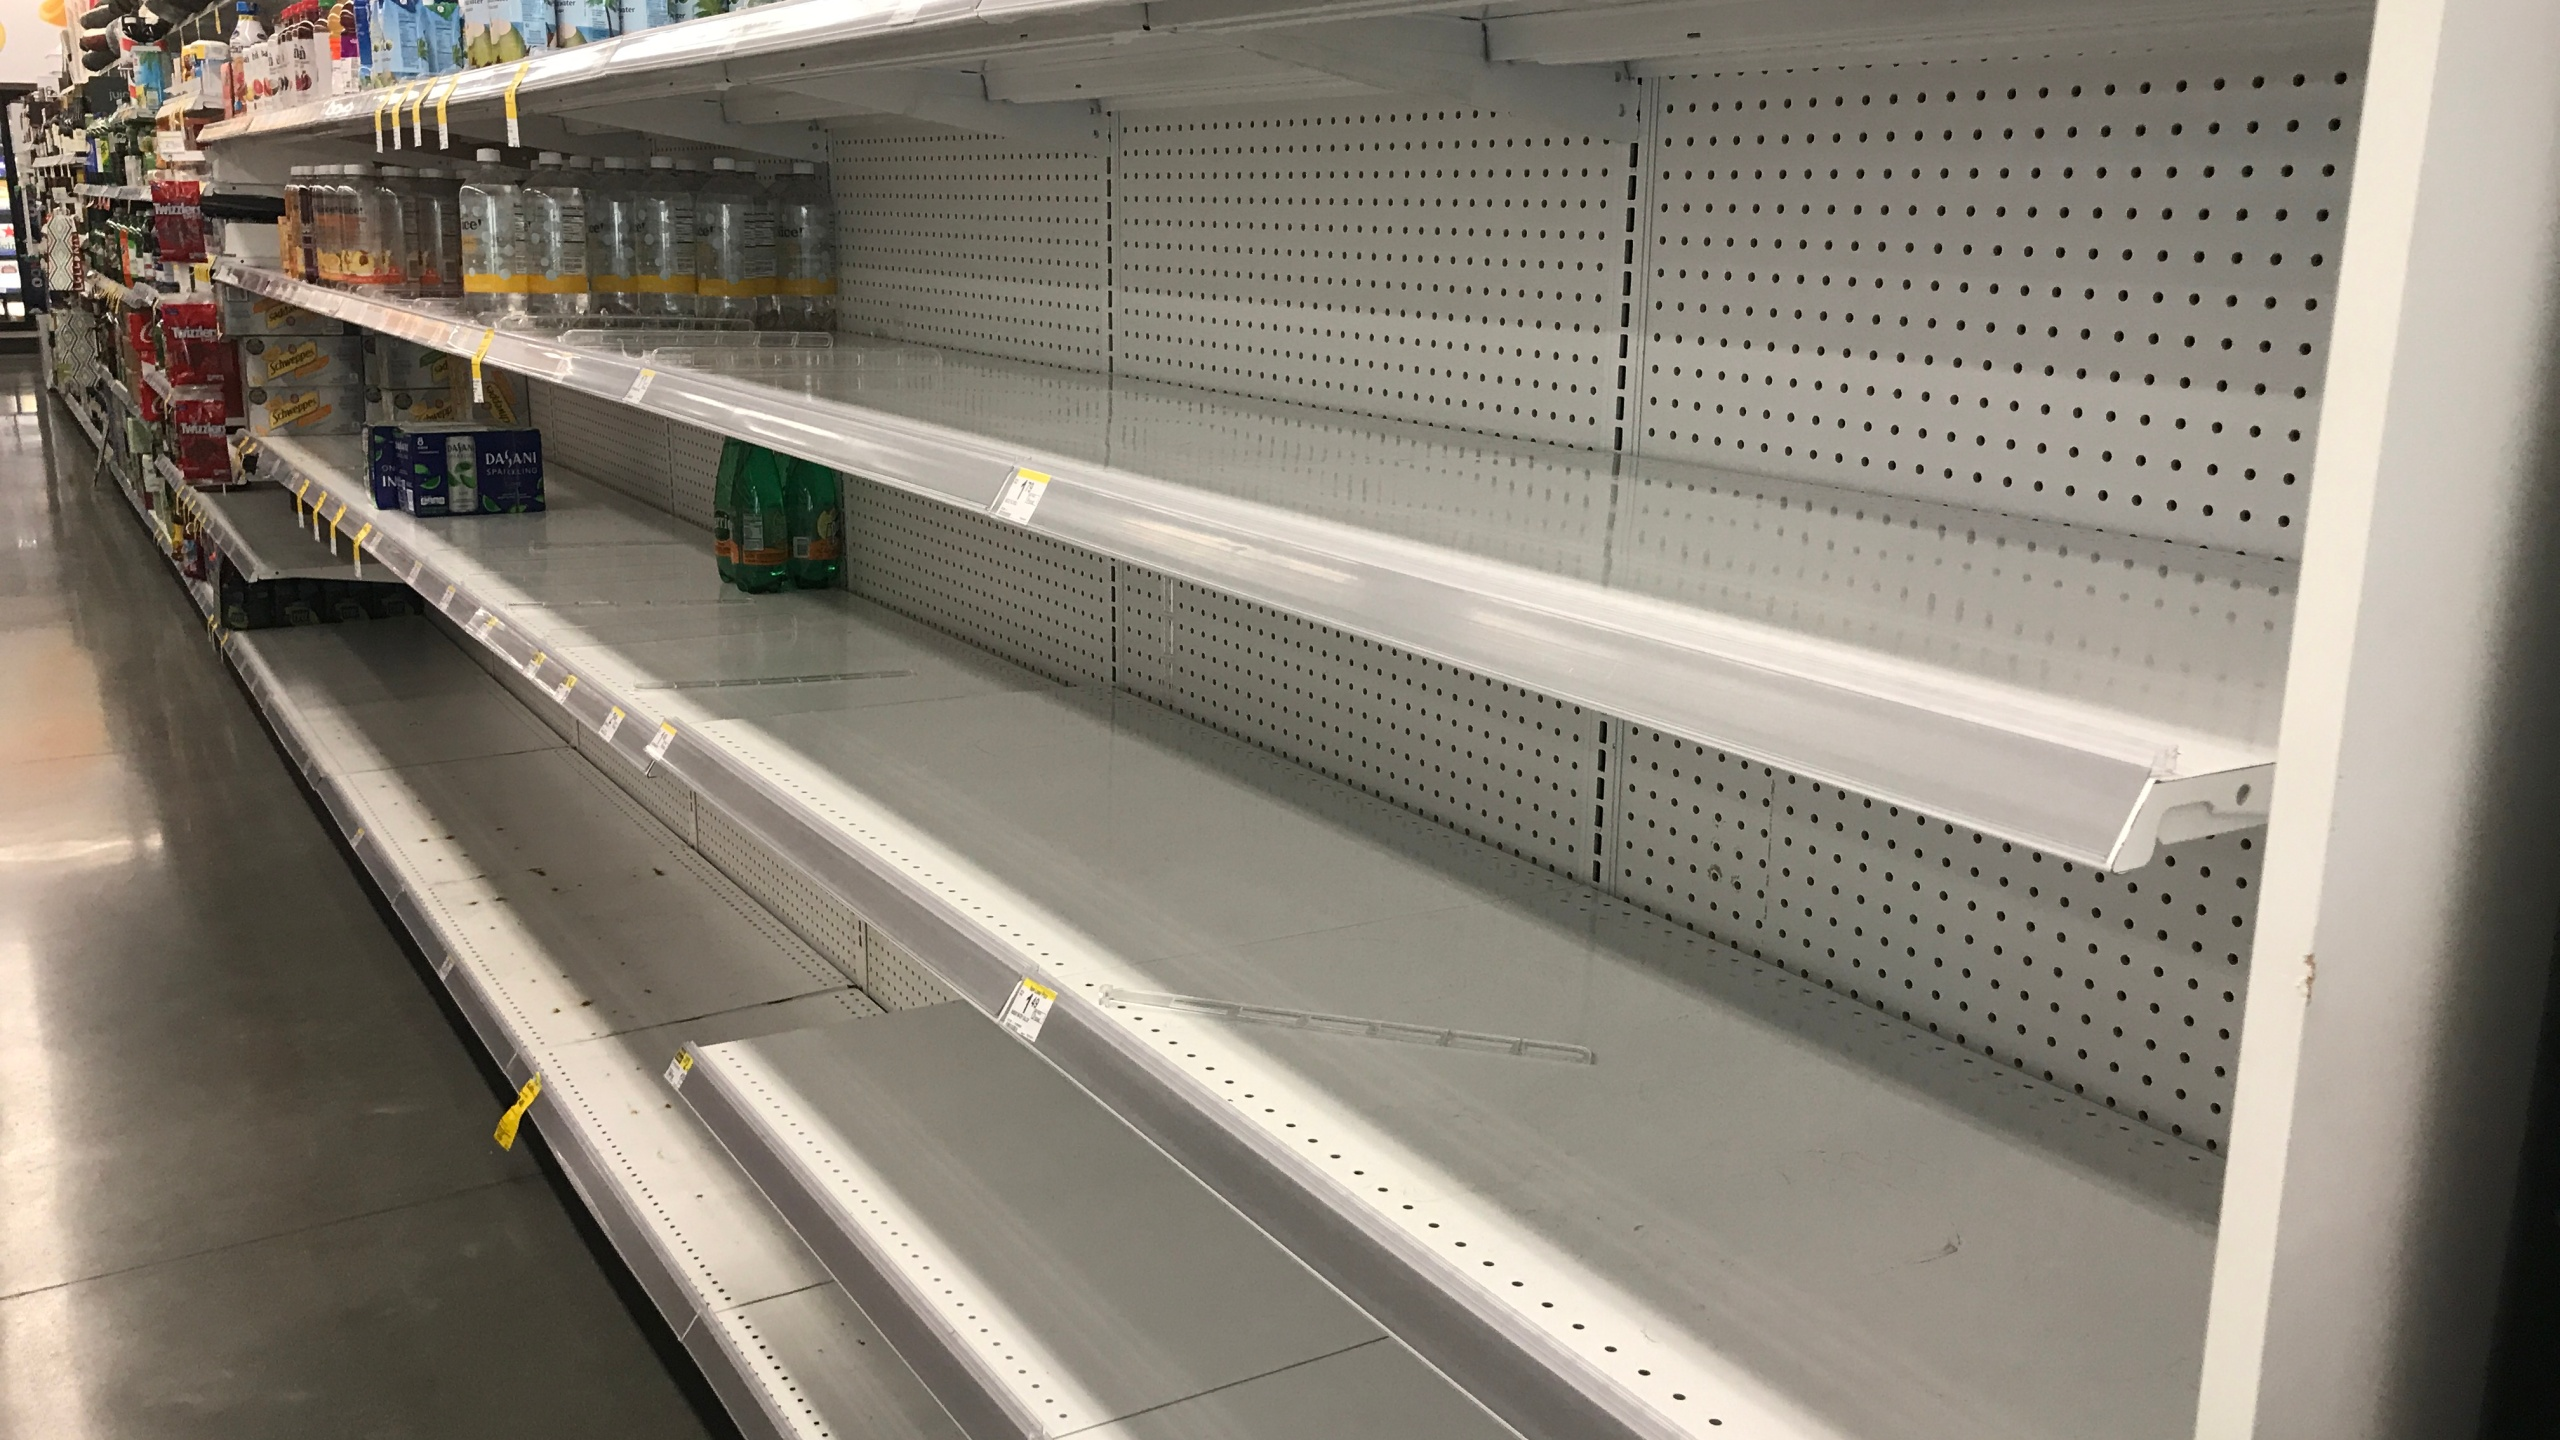 No water walgreens on swann ave_443955